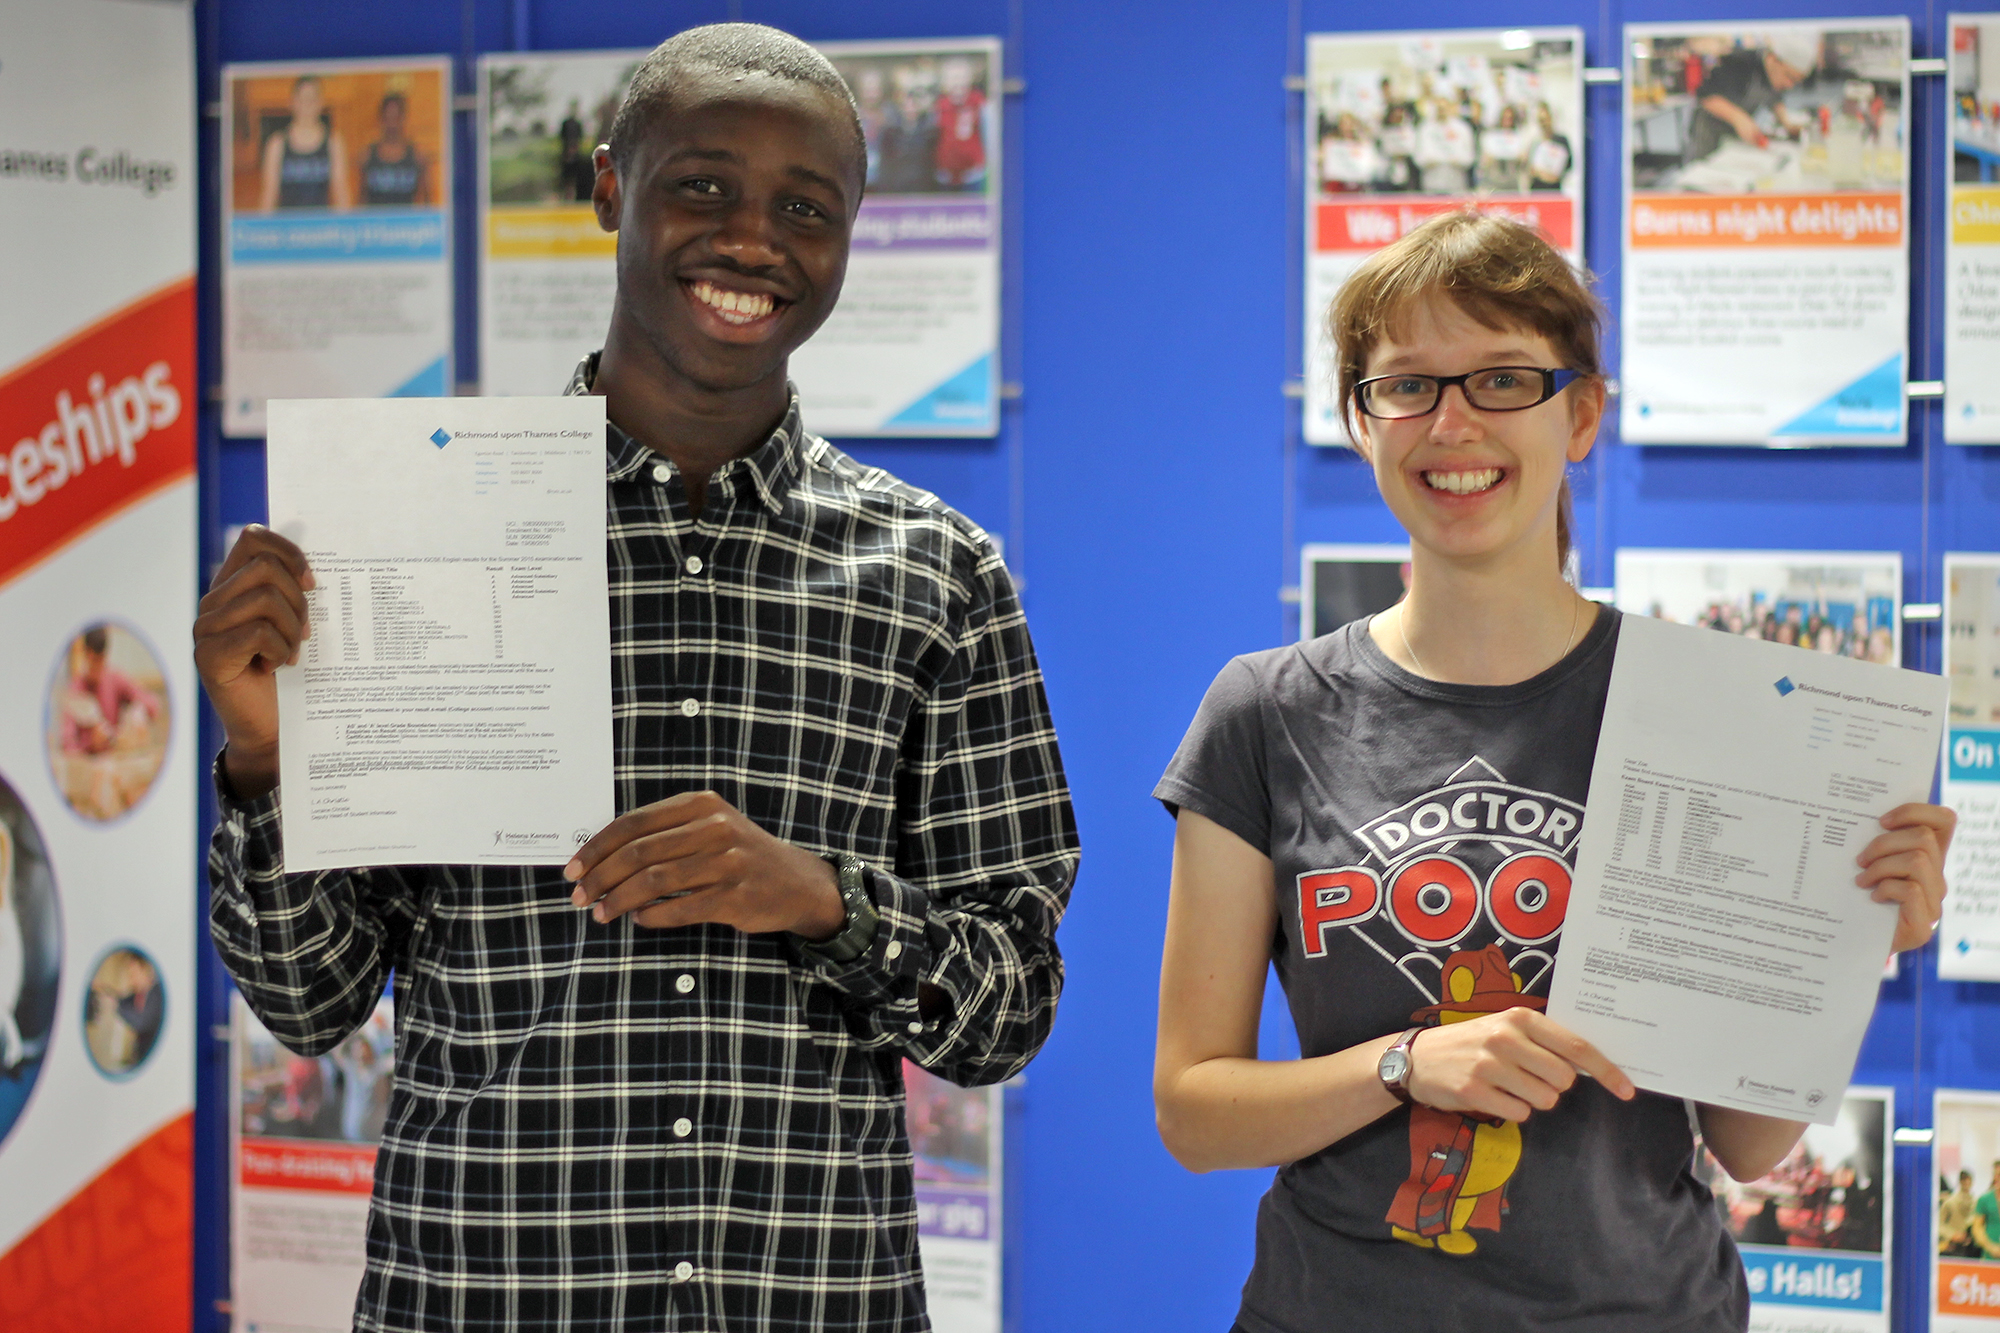 A Level Results excellent for star students at Richmond upon Thames College they will go to their dream universities